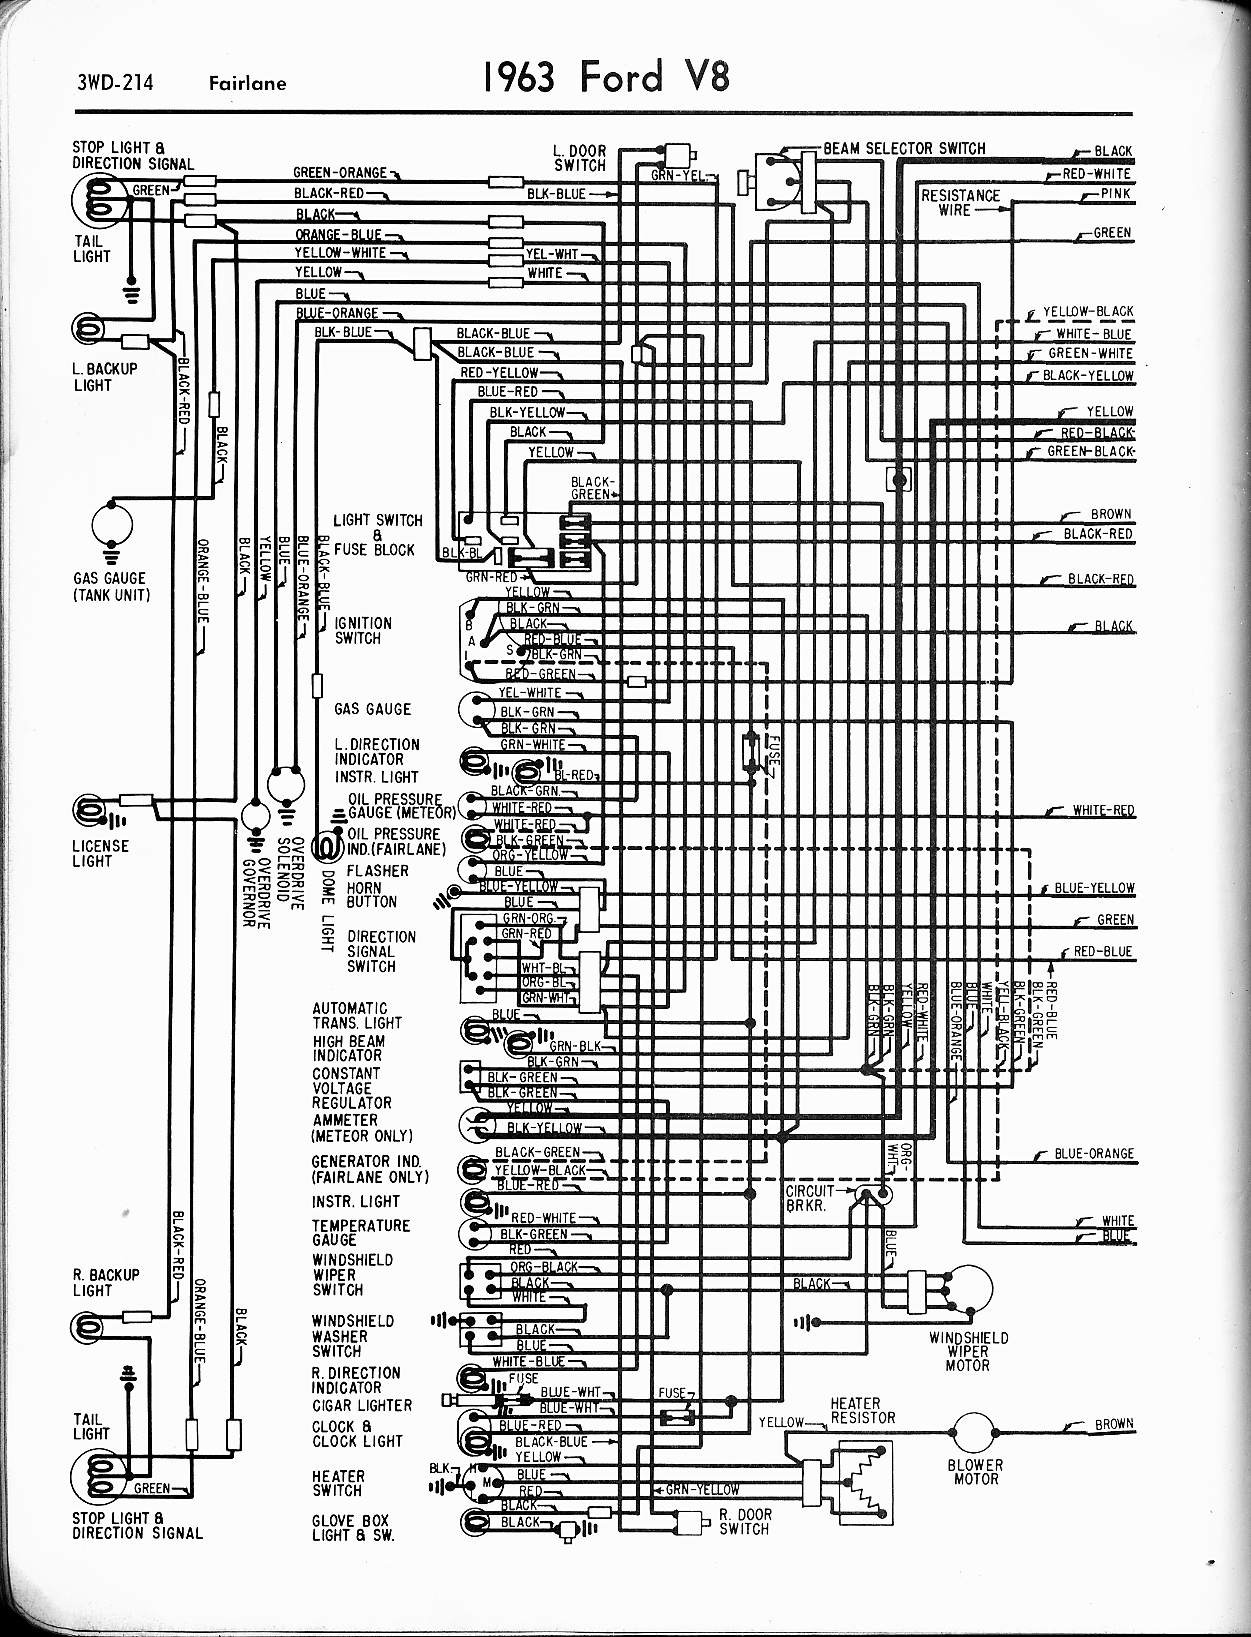 2008 Ford F650 Fuse Diagram 1963 Wiring Diagrams Electrical Crankshaft Porsche Cayenne